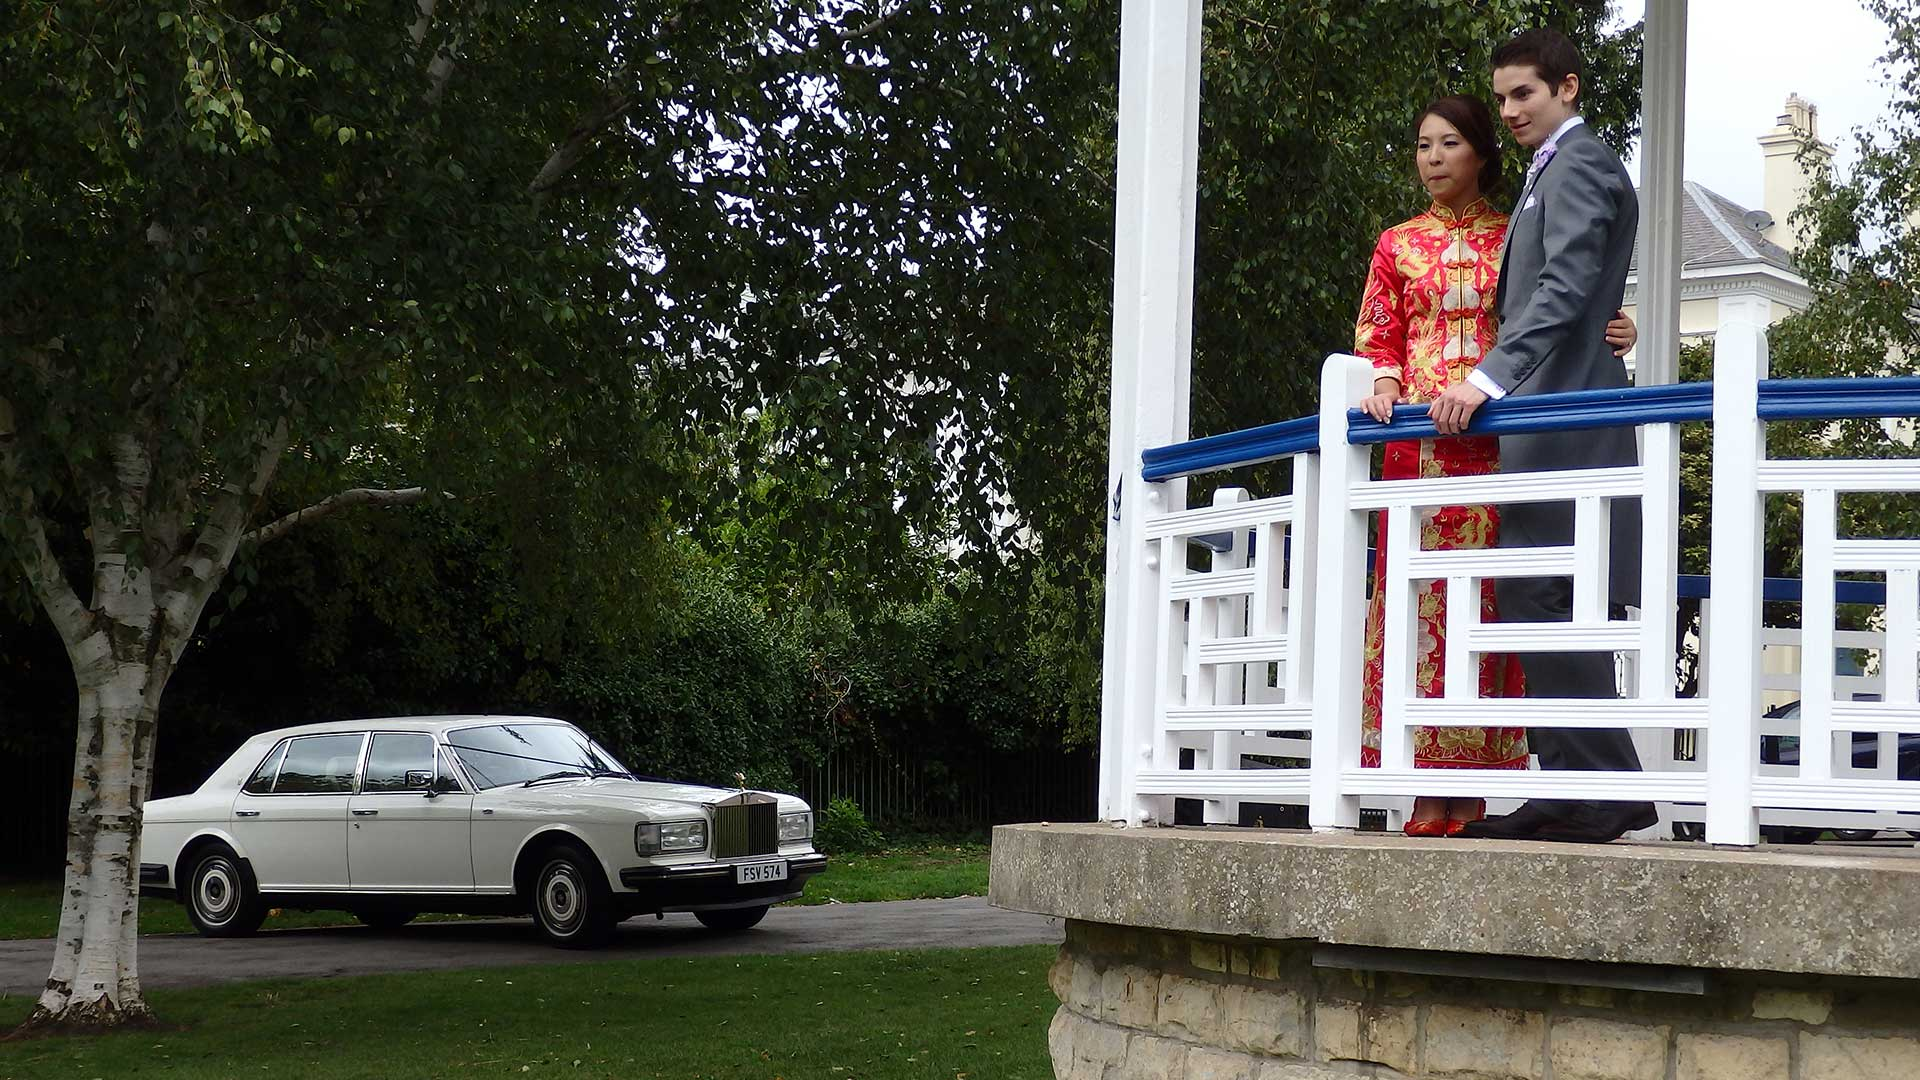 Niall and Elle on the bandstand overlooking the Rolls-Royce Silver Spur